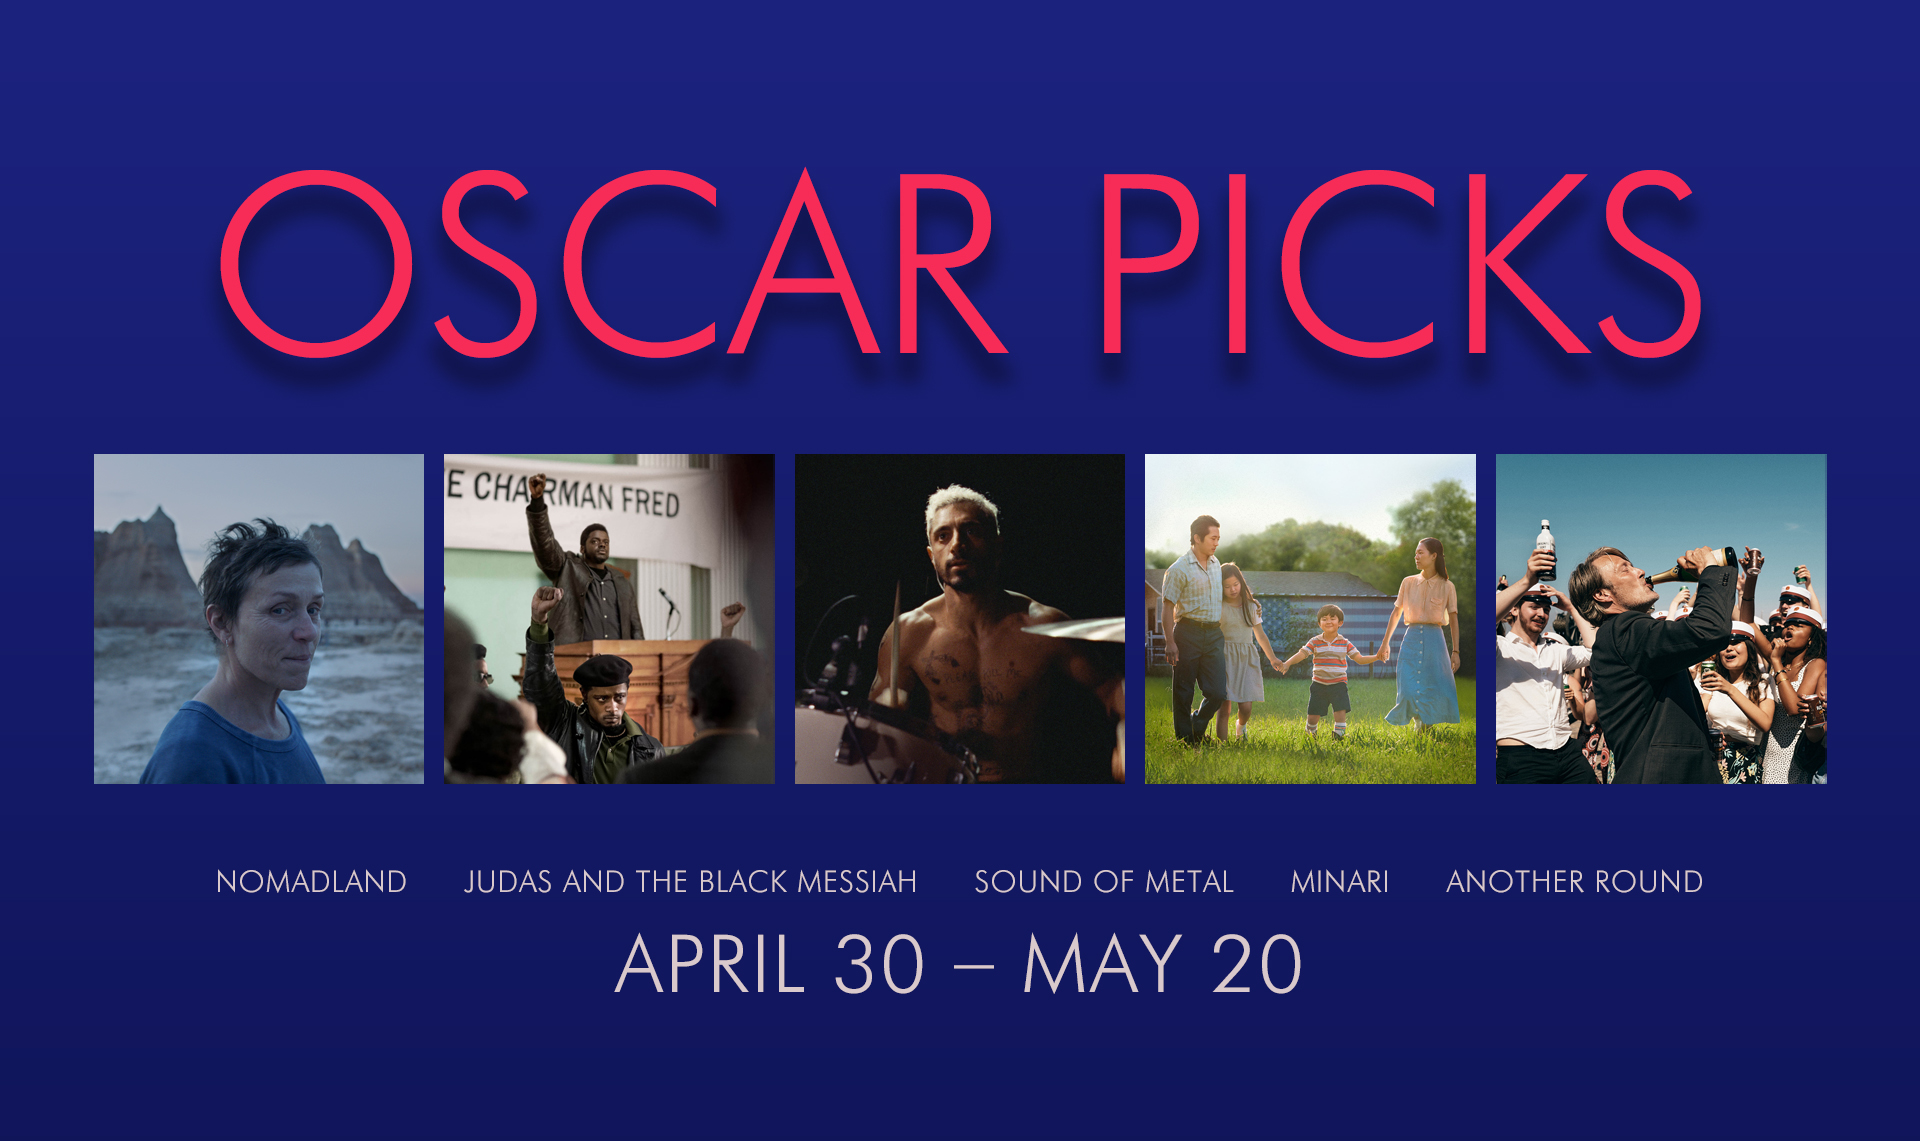 Oscar Picks